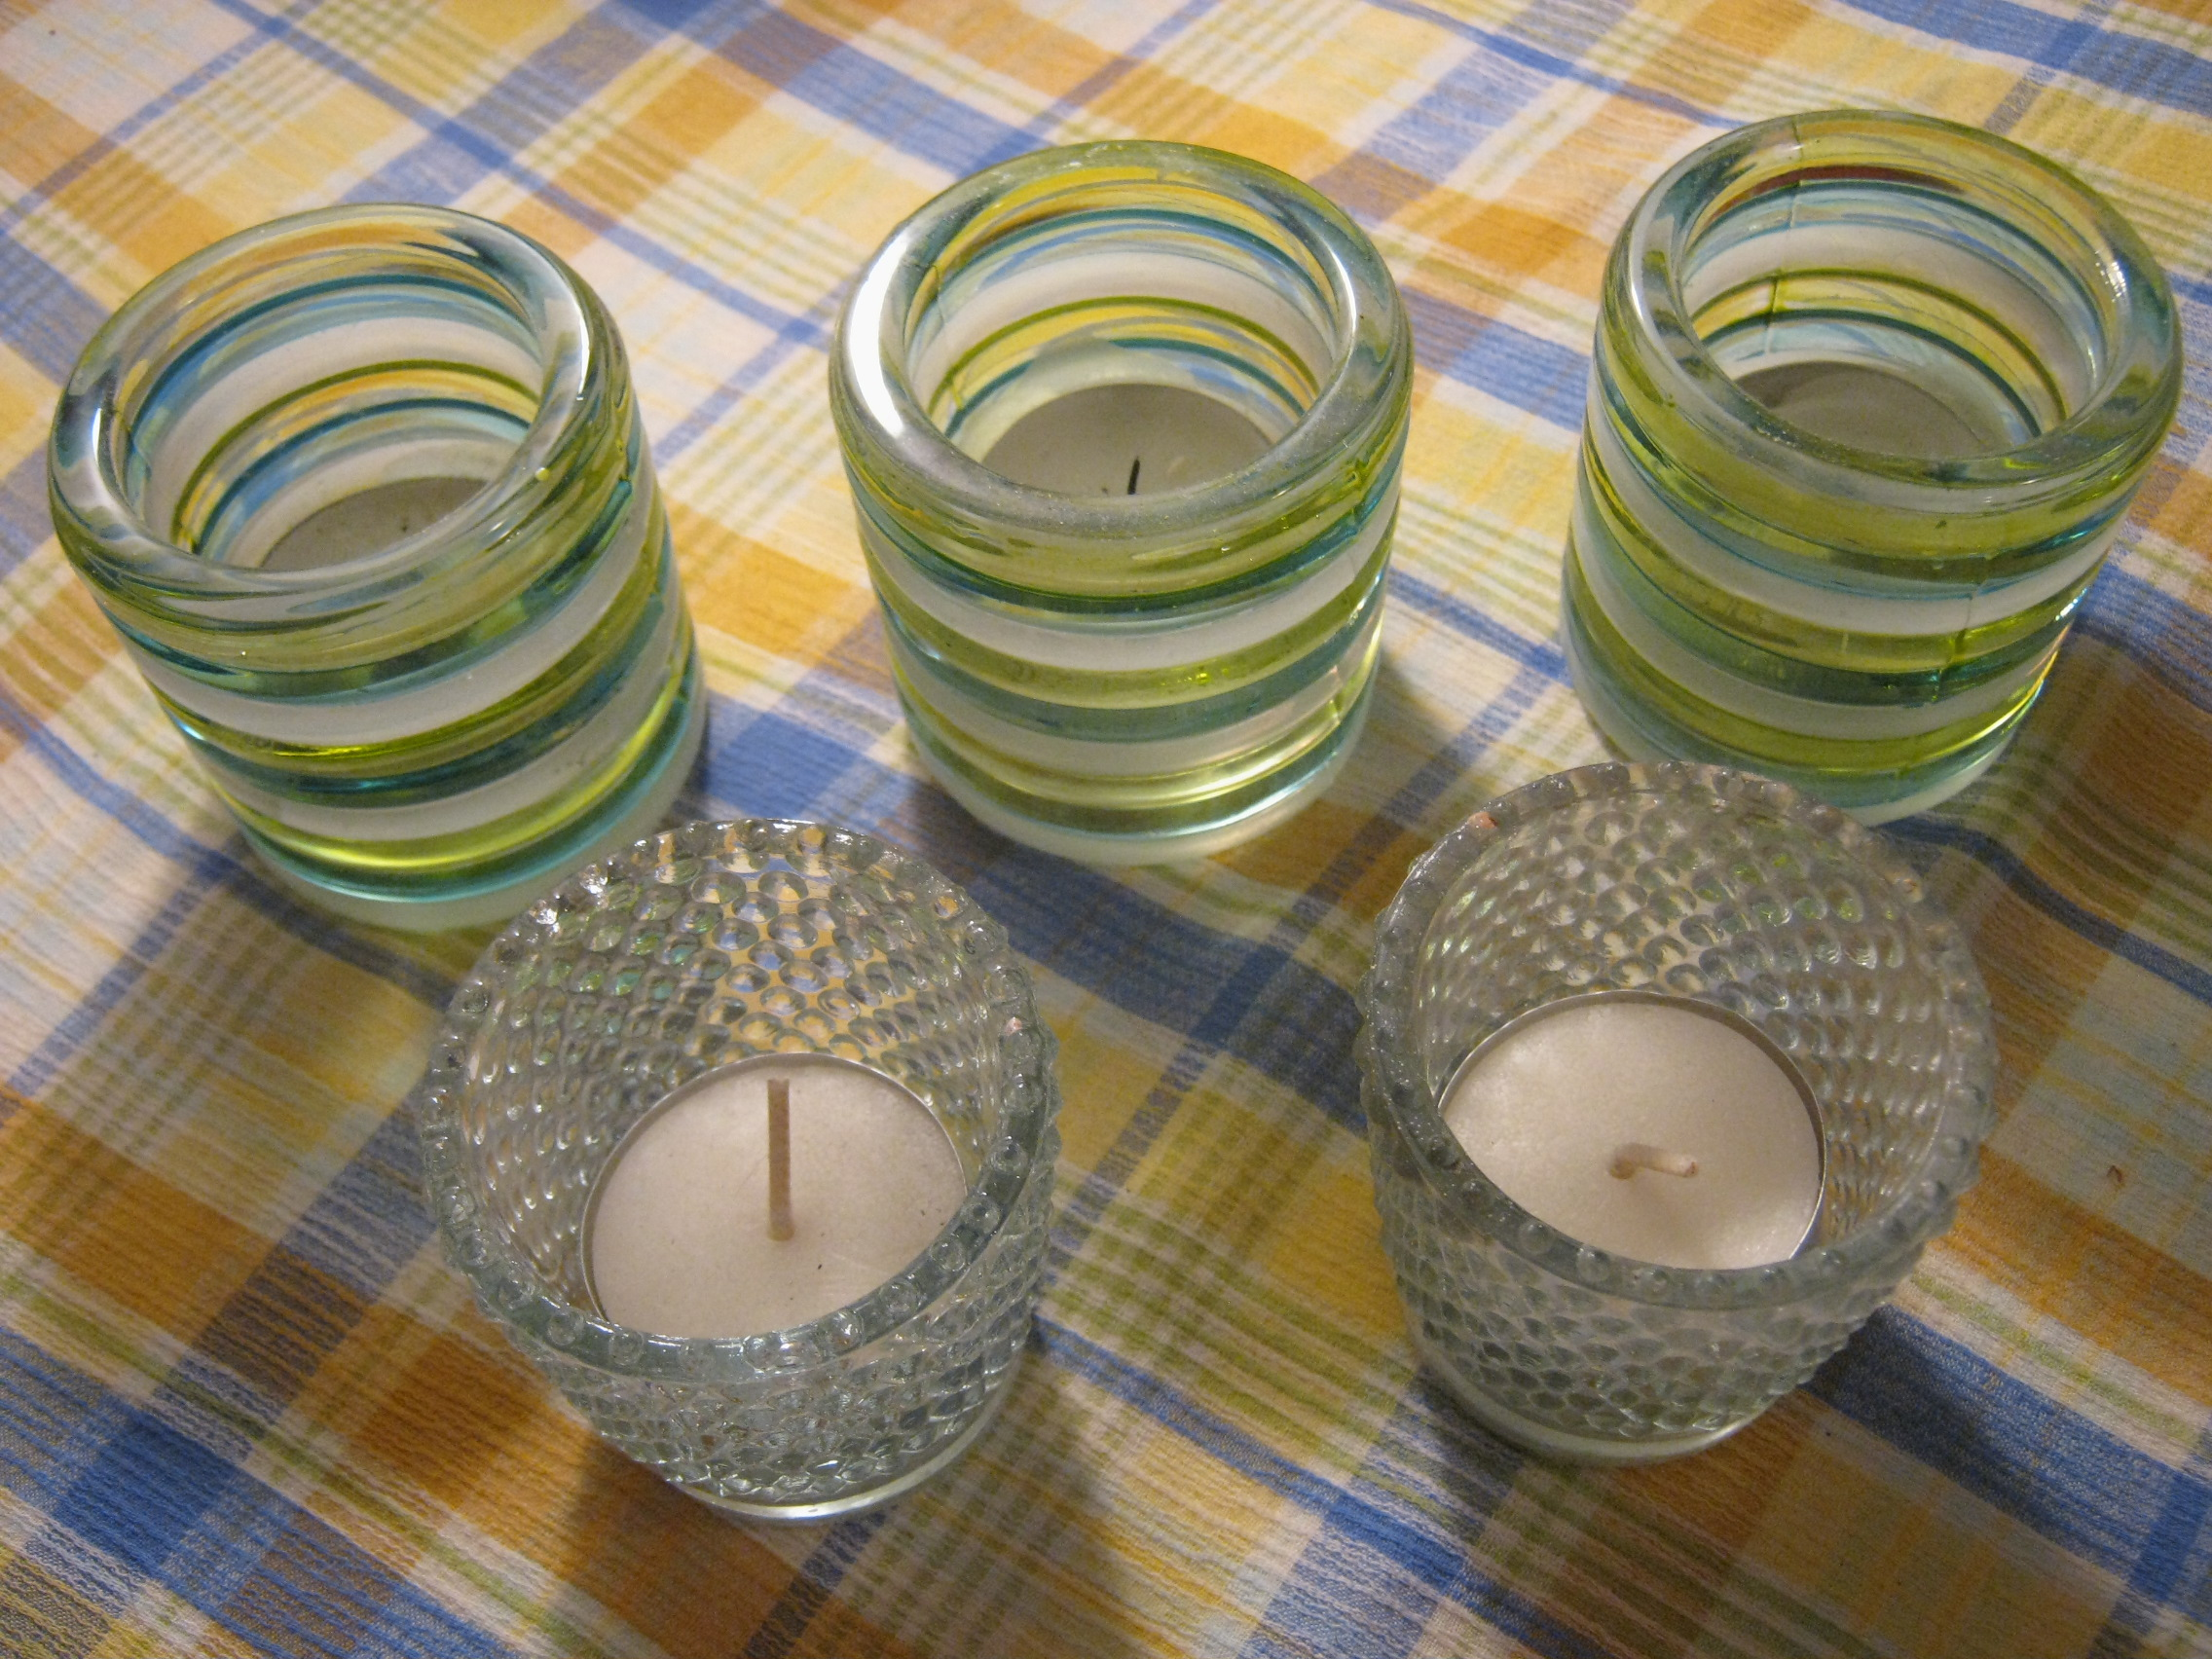 Cool Candle Holders Candle Holders Things I Find In The Garbage